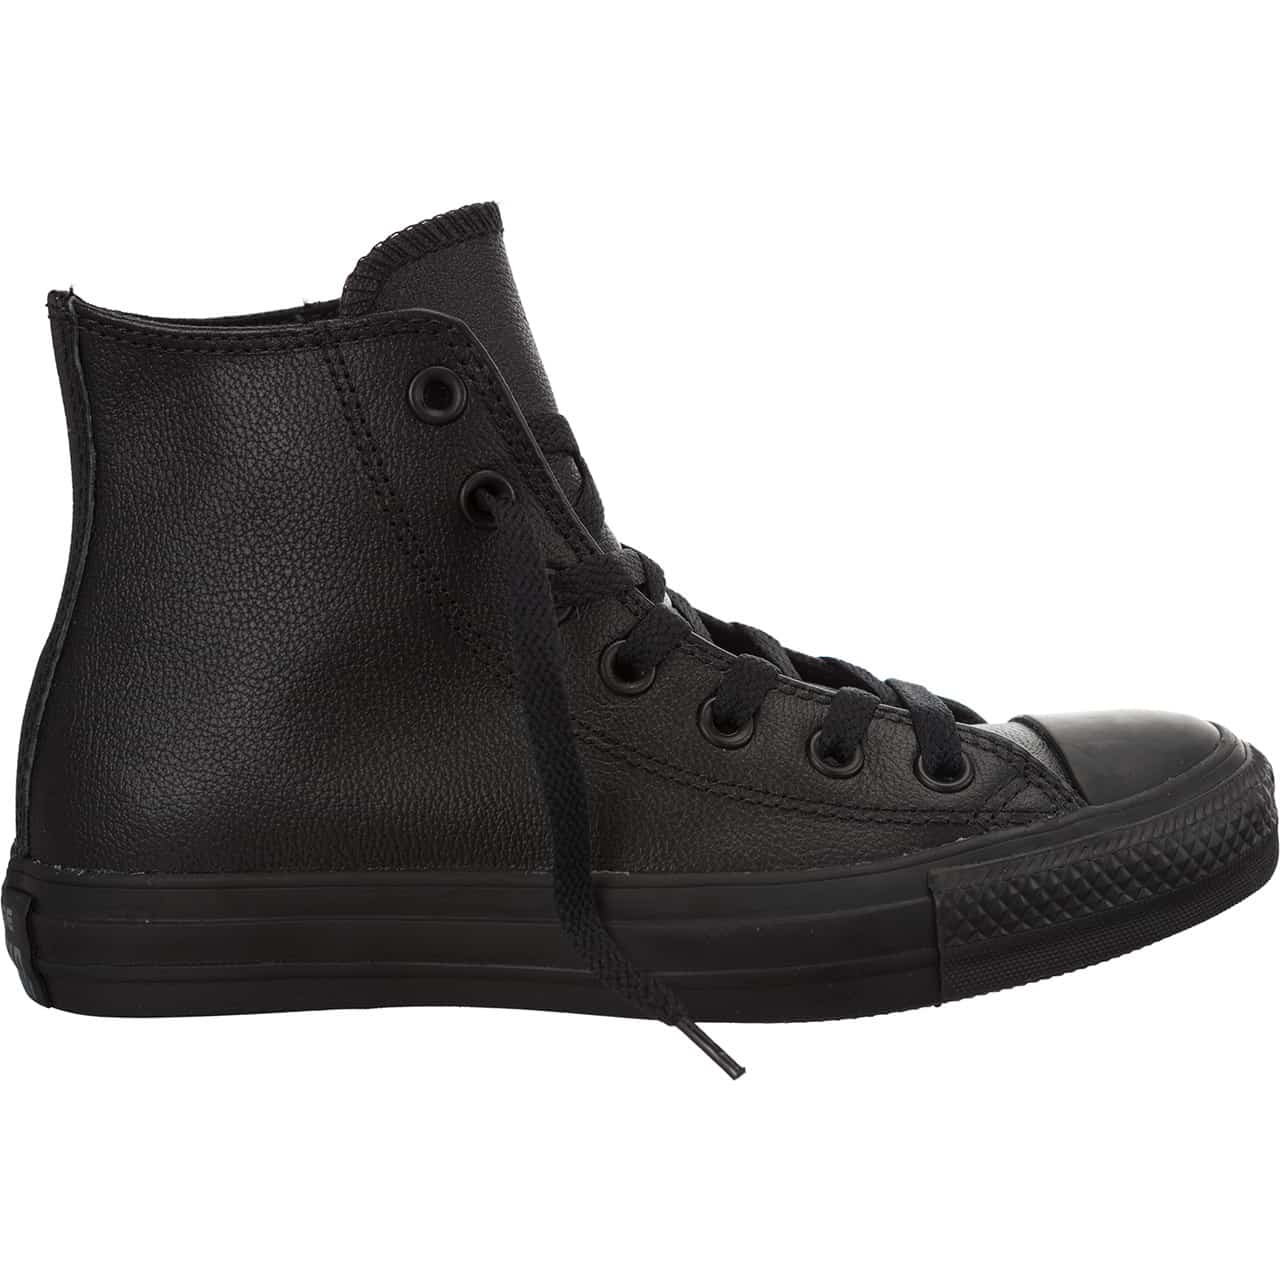 TENISI CONVERSE CT AS HI - 135251C